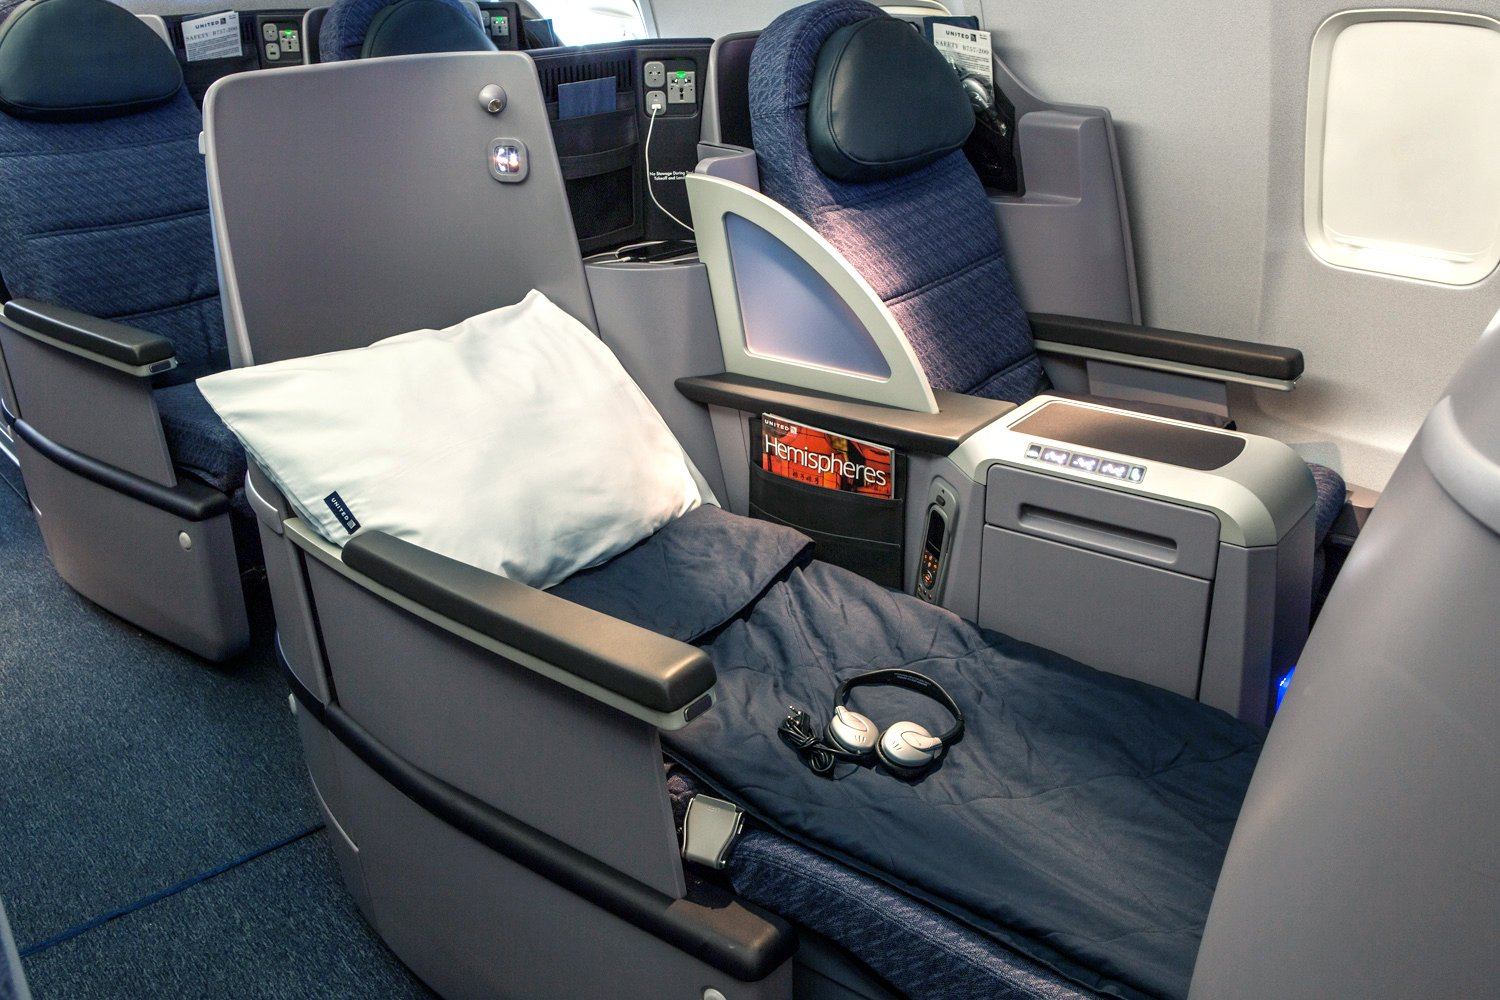 United P.S. Business Seat